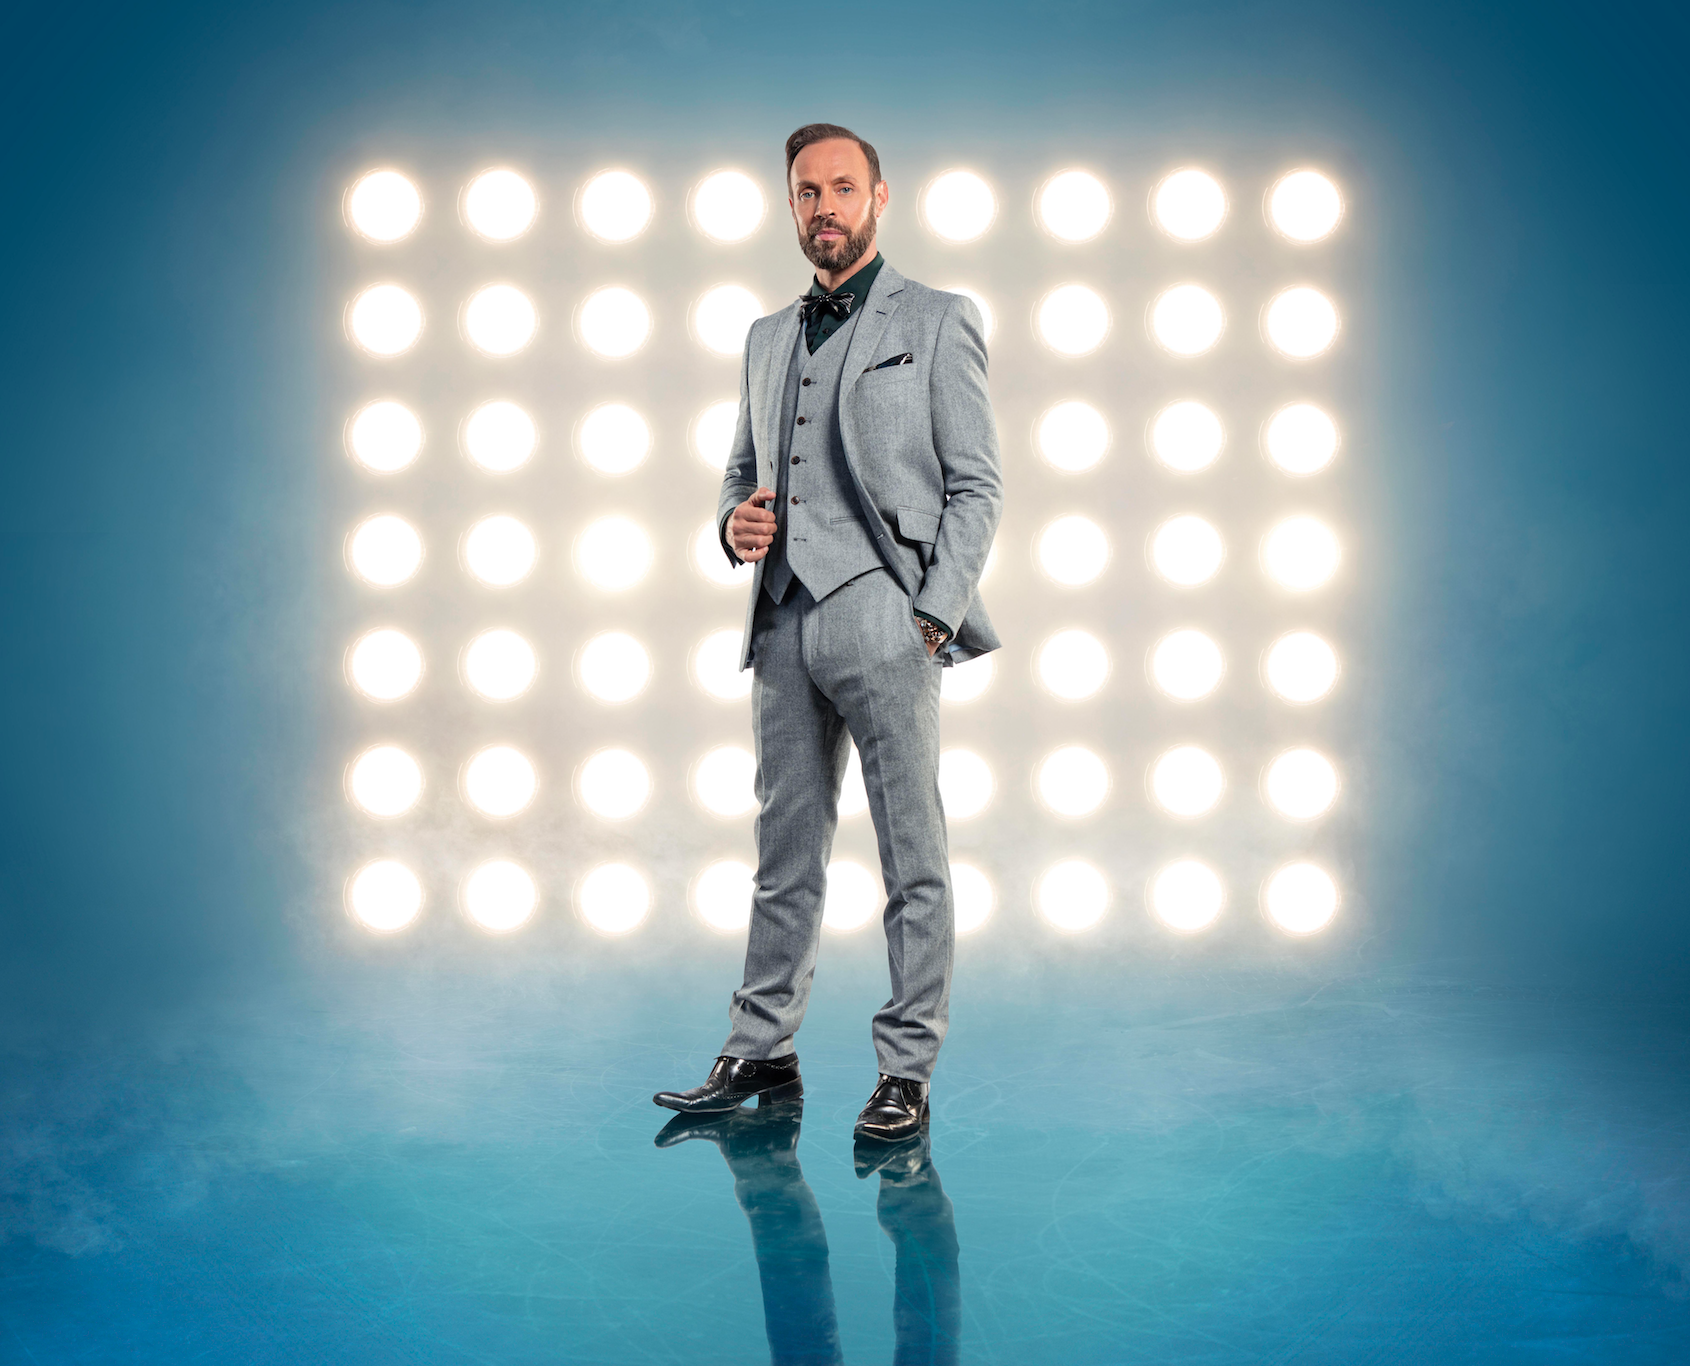 Dancing on Ice judge Jason Gardiner quits series following controversial rows with Gemma Collins